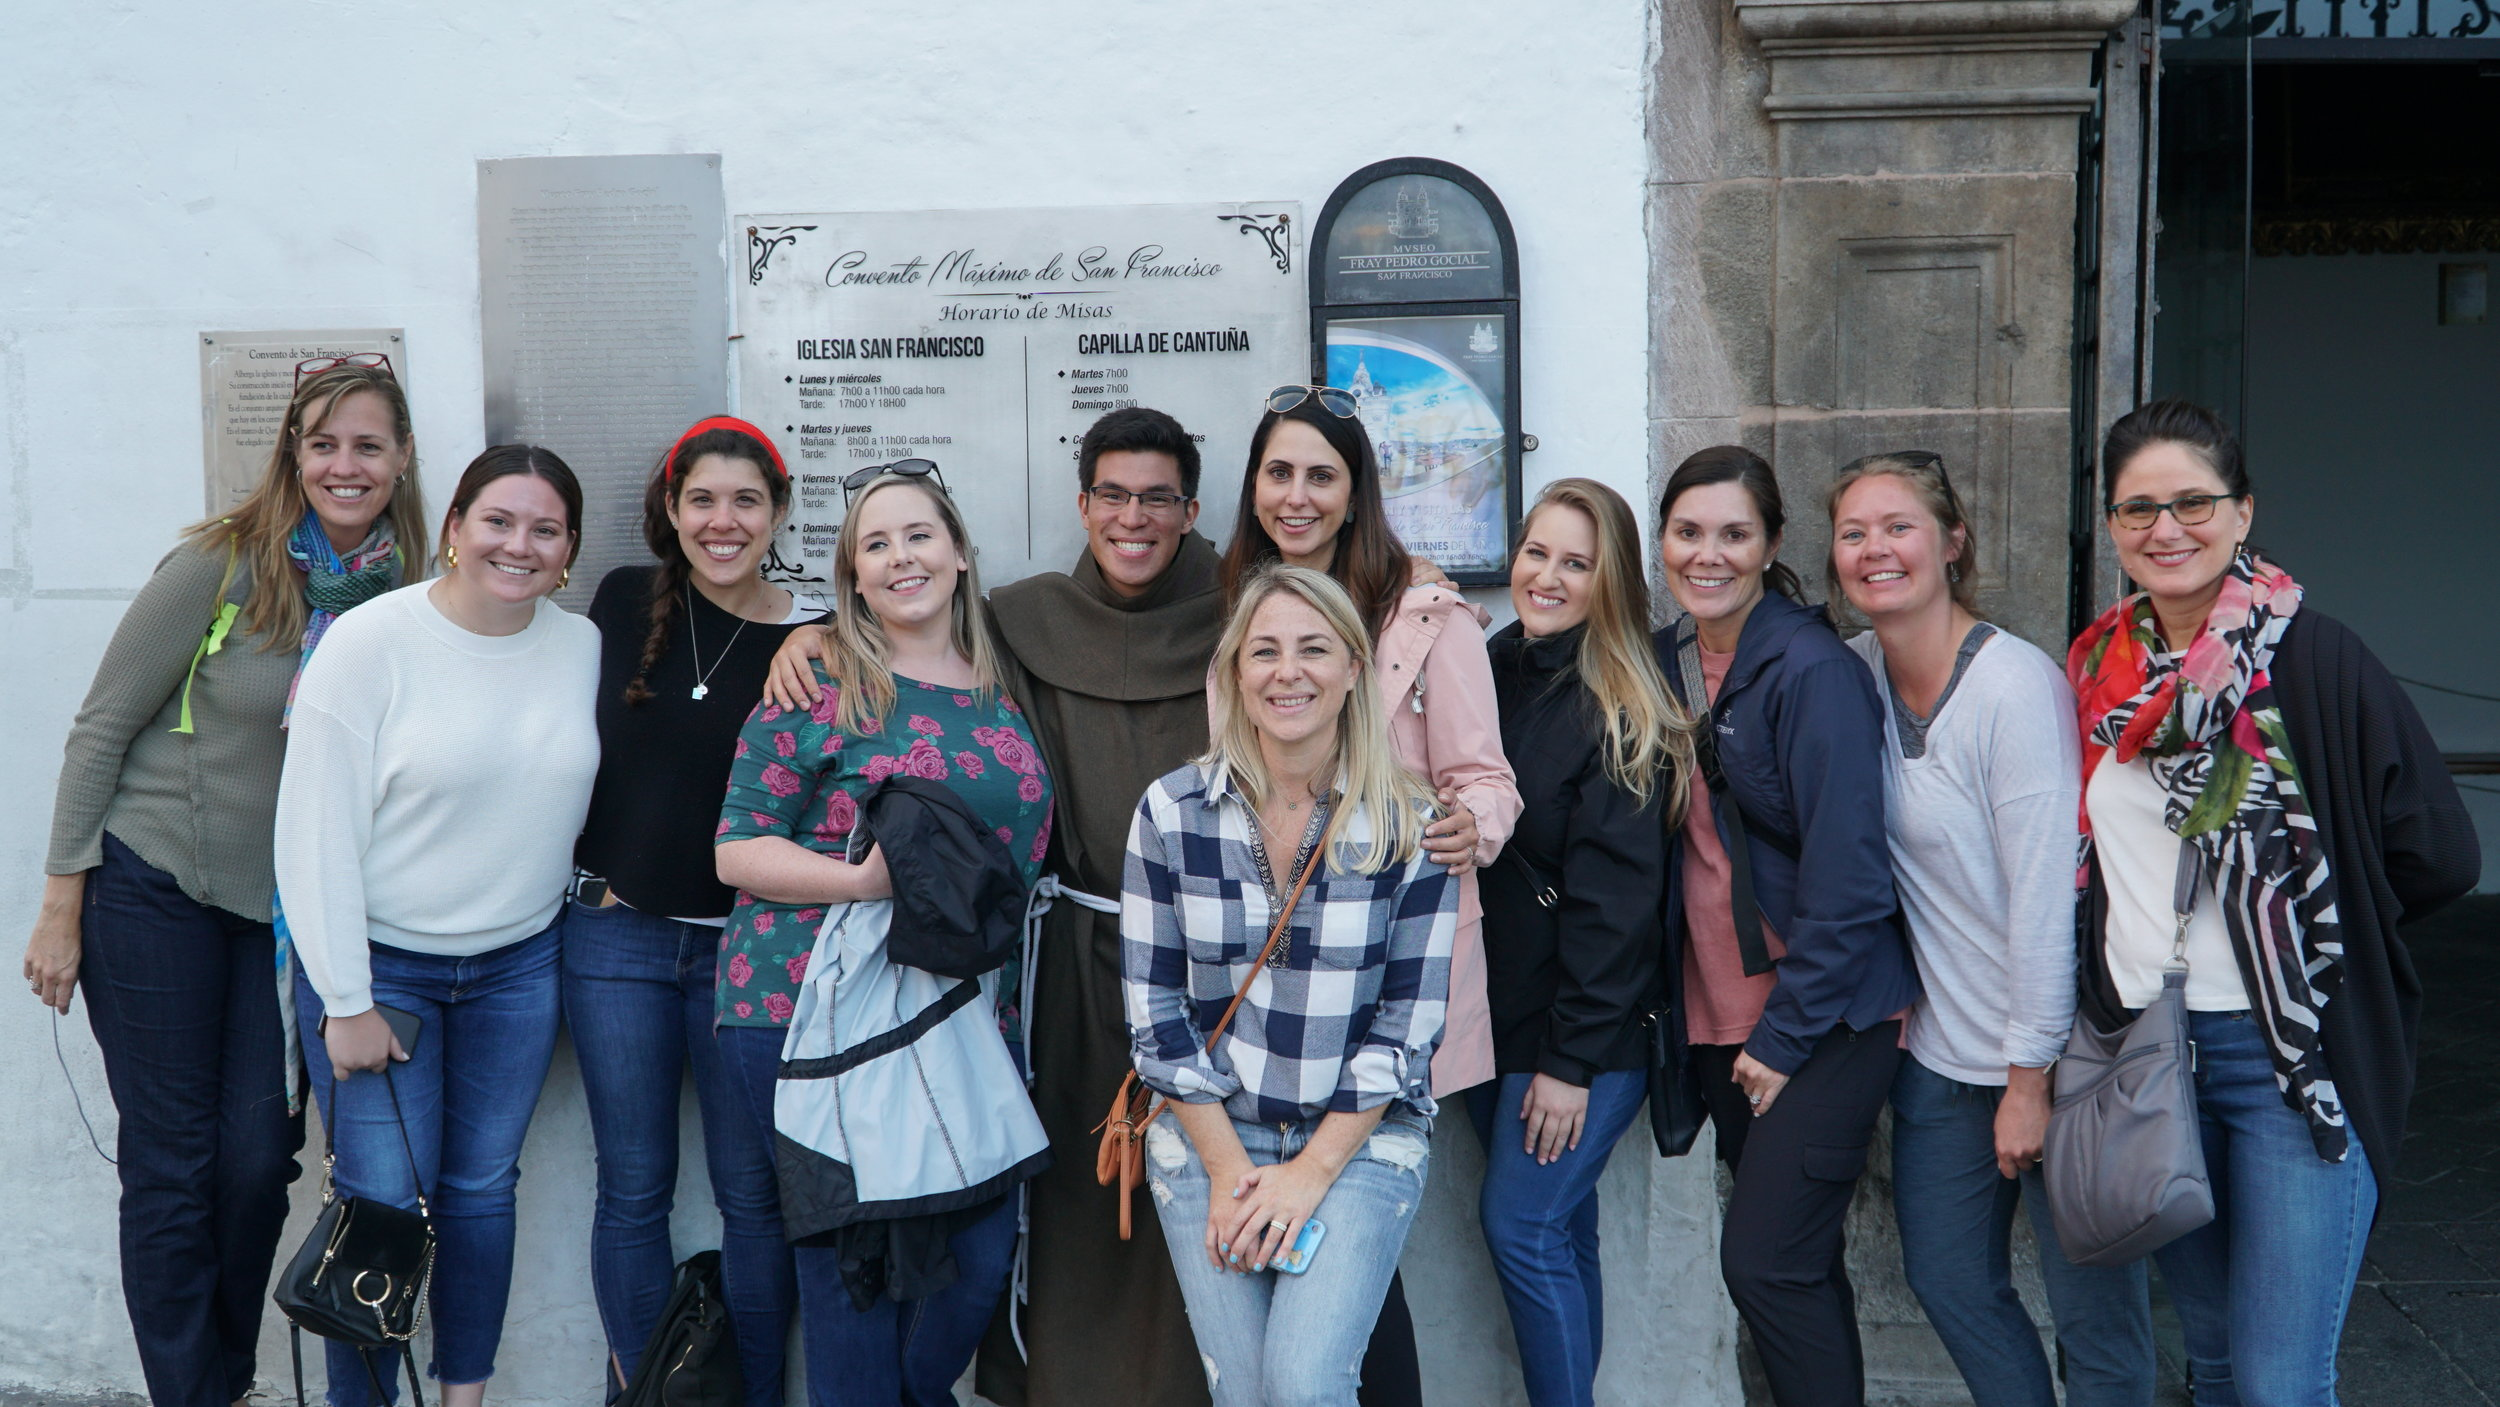 The 2019 Ecuador Crew (from L to R): Laurel Perry of Ciao Bambino, Danielle Diaz of Scott Dunn USA, Katy Lotz of MayaMaya Travel, Barbara Davidson of Kensington Tours, Monica Irauzqui of Yampu Tours, Sarah Groen of Bell & Bly (Brownell), Jessica Hart of Travel by Hart (Brownell), Shana Mandel of The Local Foreigner, Michele MacDonald of Core Traveler, Lindsay Schou of Landed Travel, Anna Sizer or Ciao Bambino.